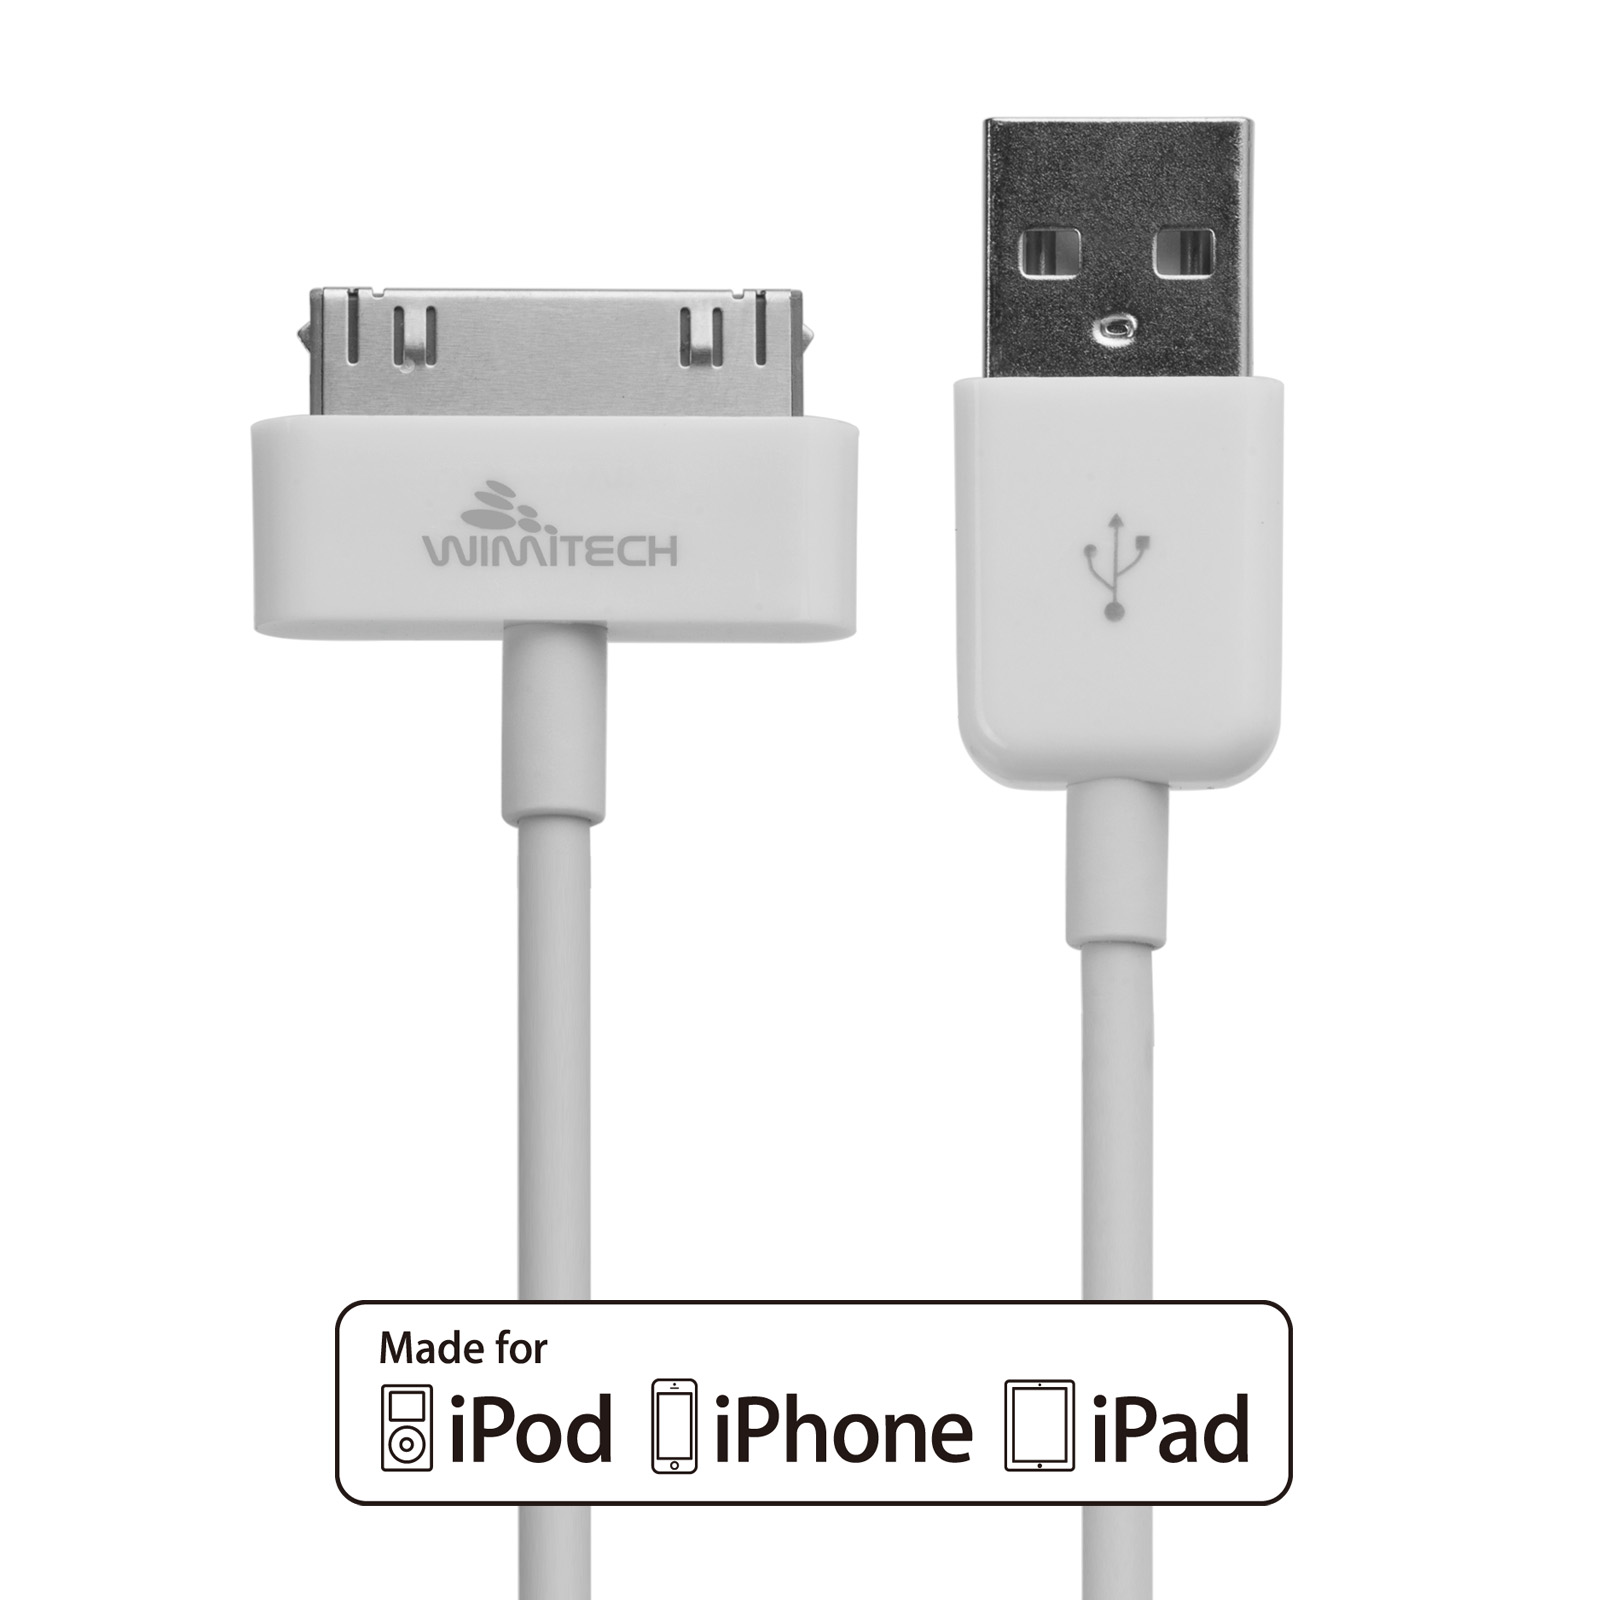 Cavo USB per iPhone 4, 4S , iPad 2 e iPod